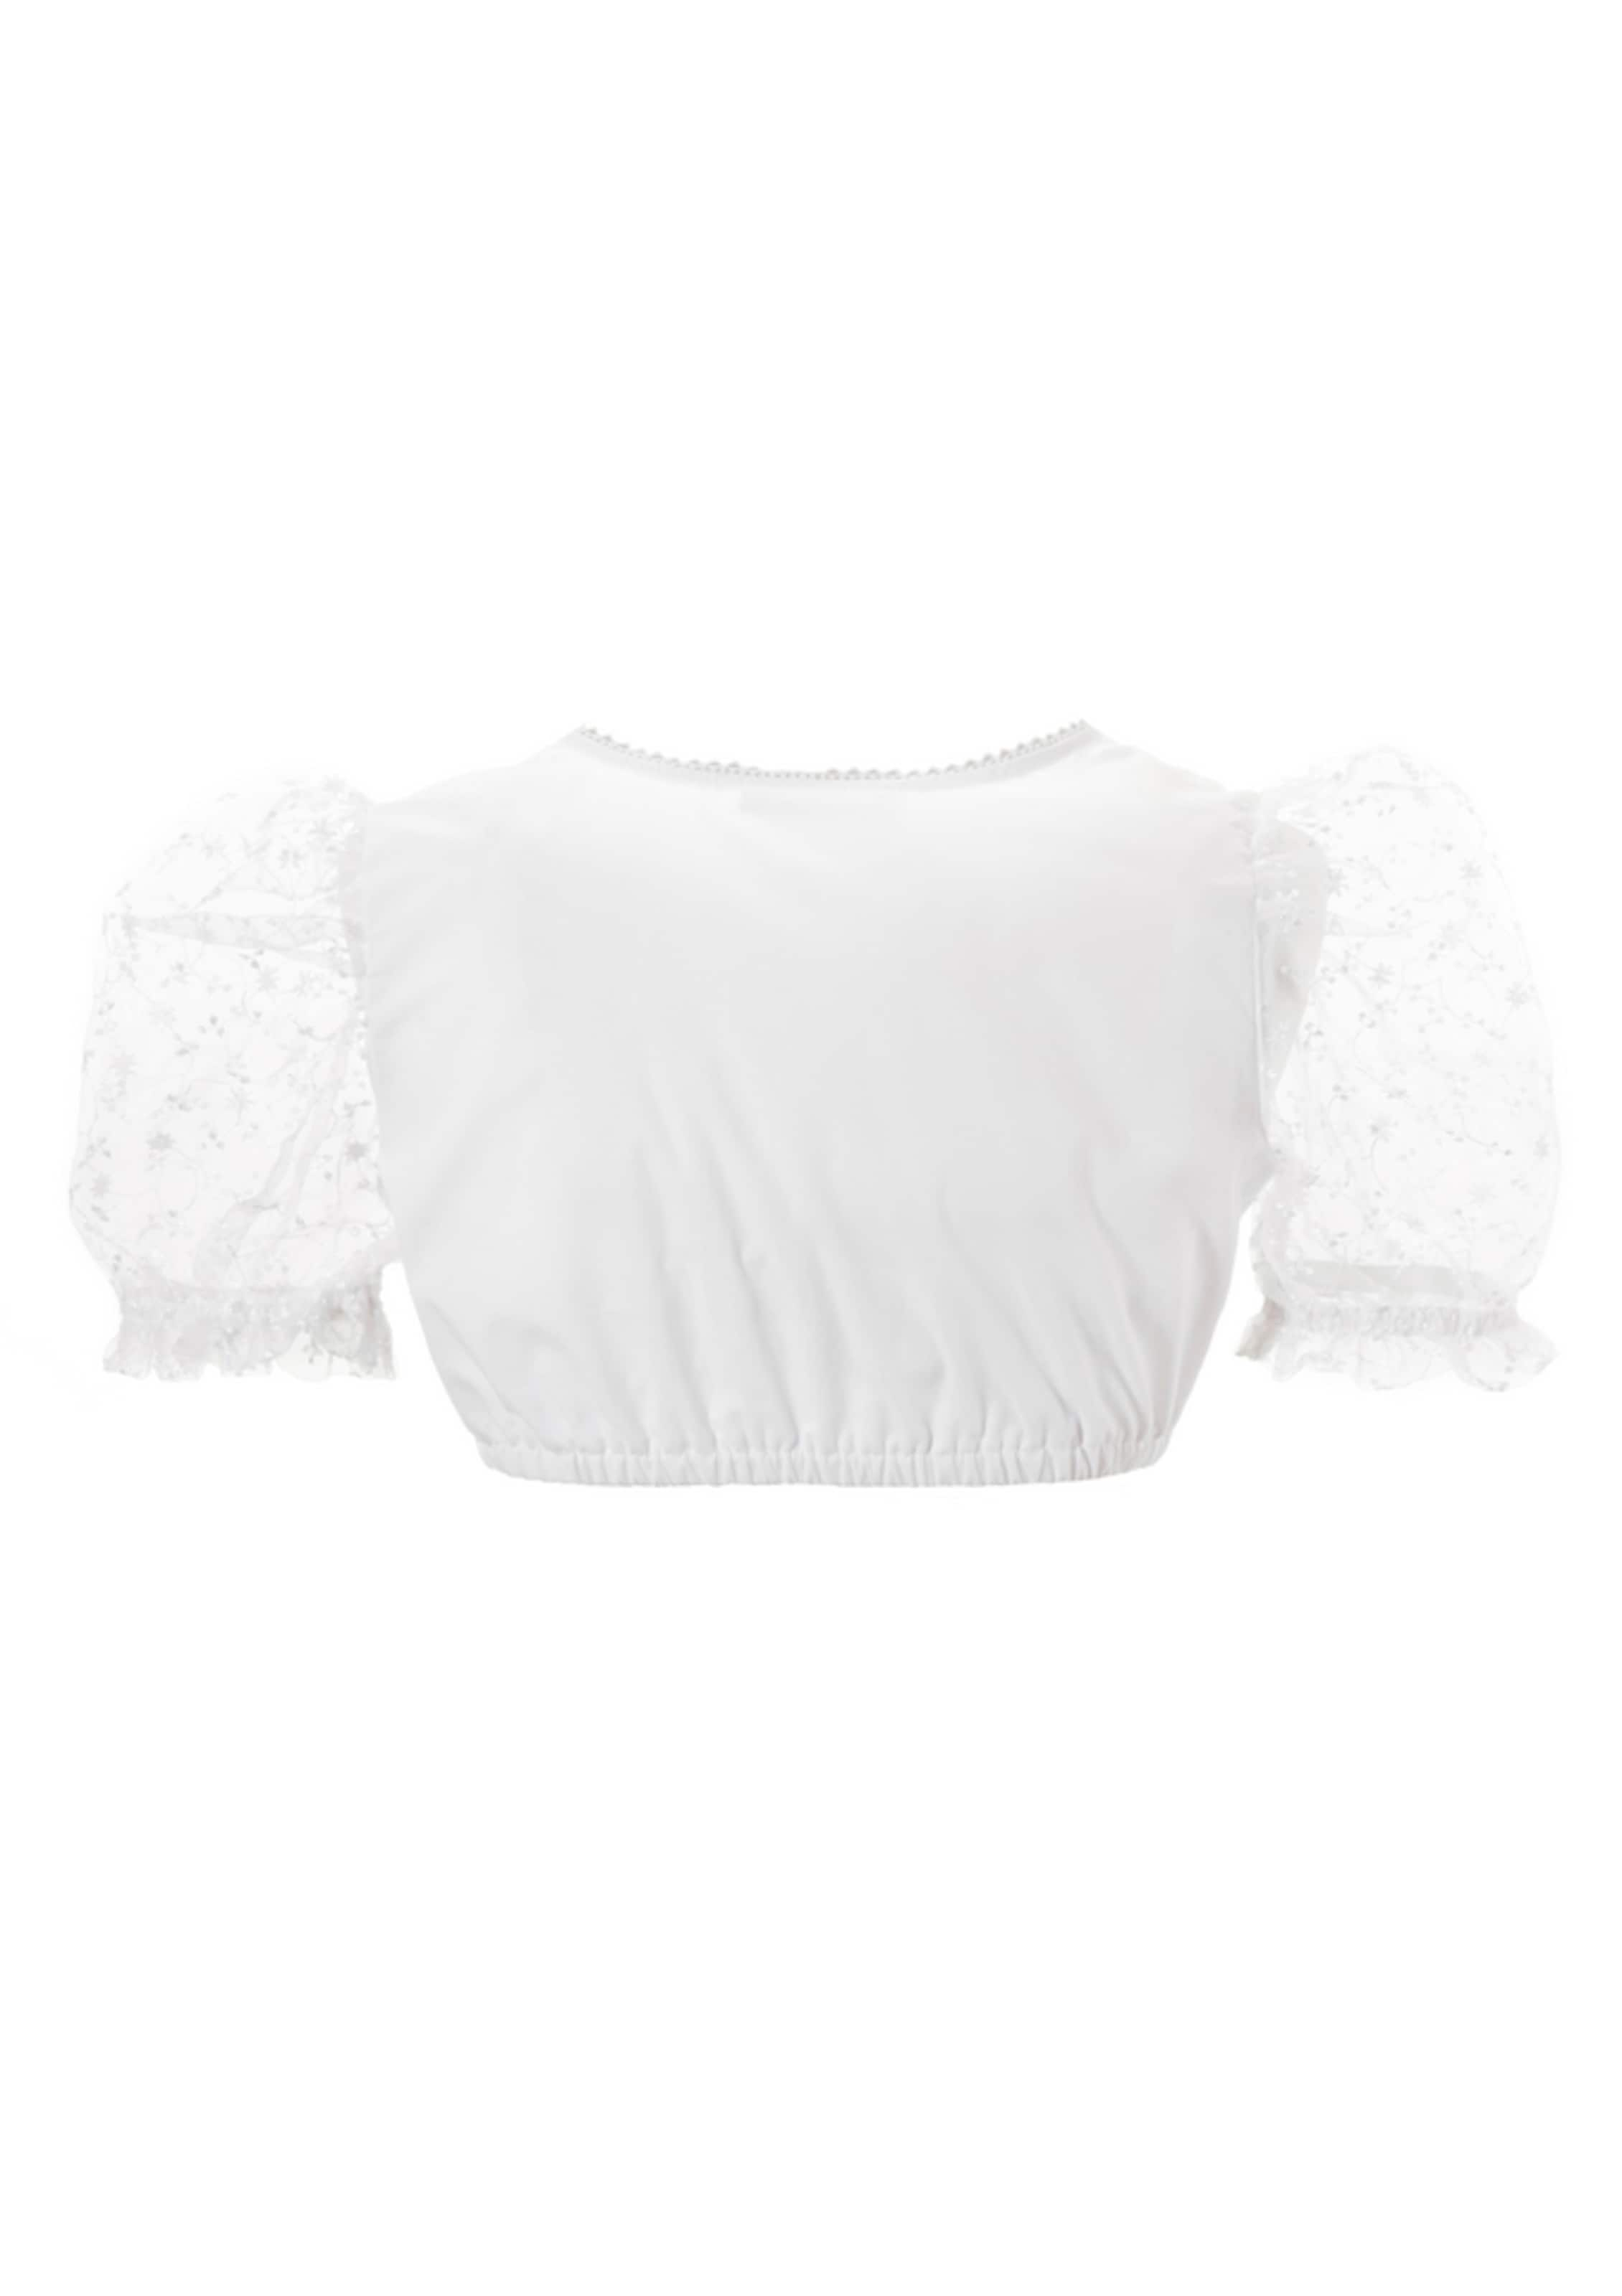 Wit Stockerpoint Klederdracht Blouse In Blouse Stockerpoint In Wit Klederdracht Stockerpoint Klederdracht xeoCrdB